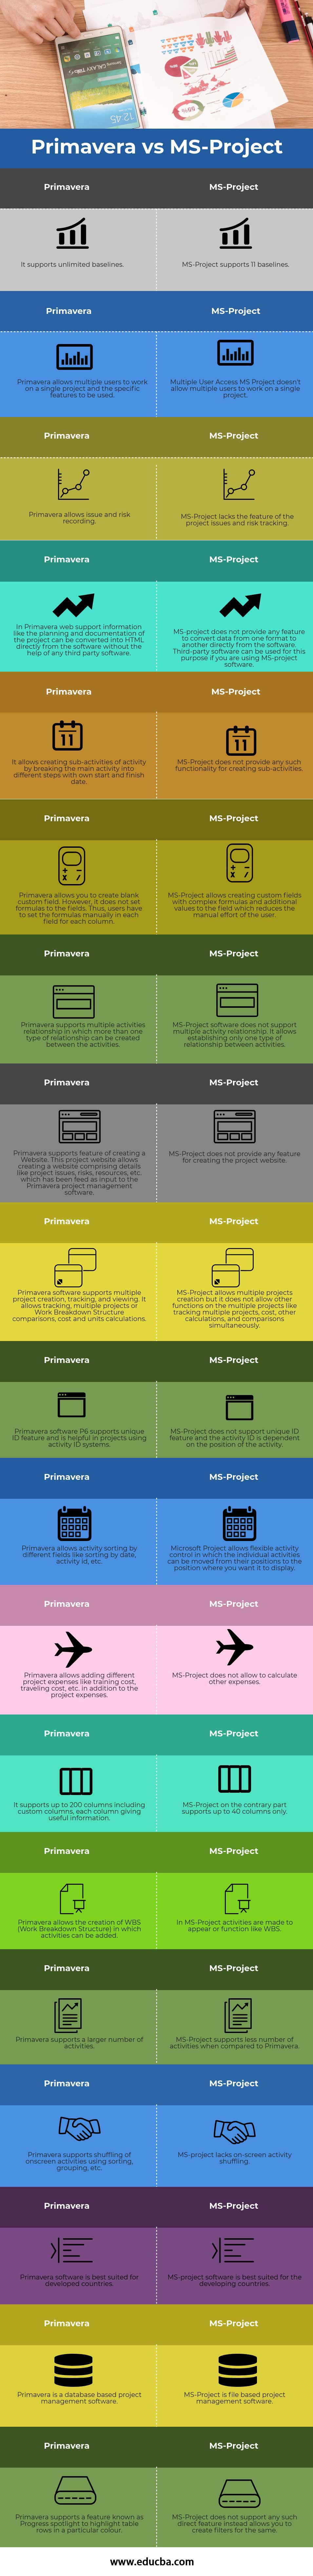 Primavera vs MS Project info(Primavera v/s MS-Project)